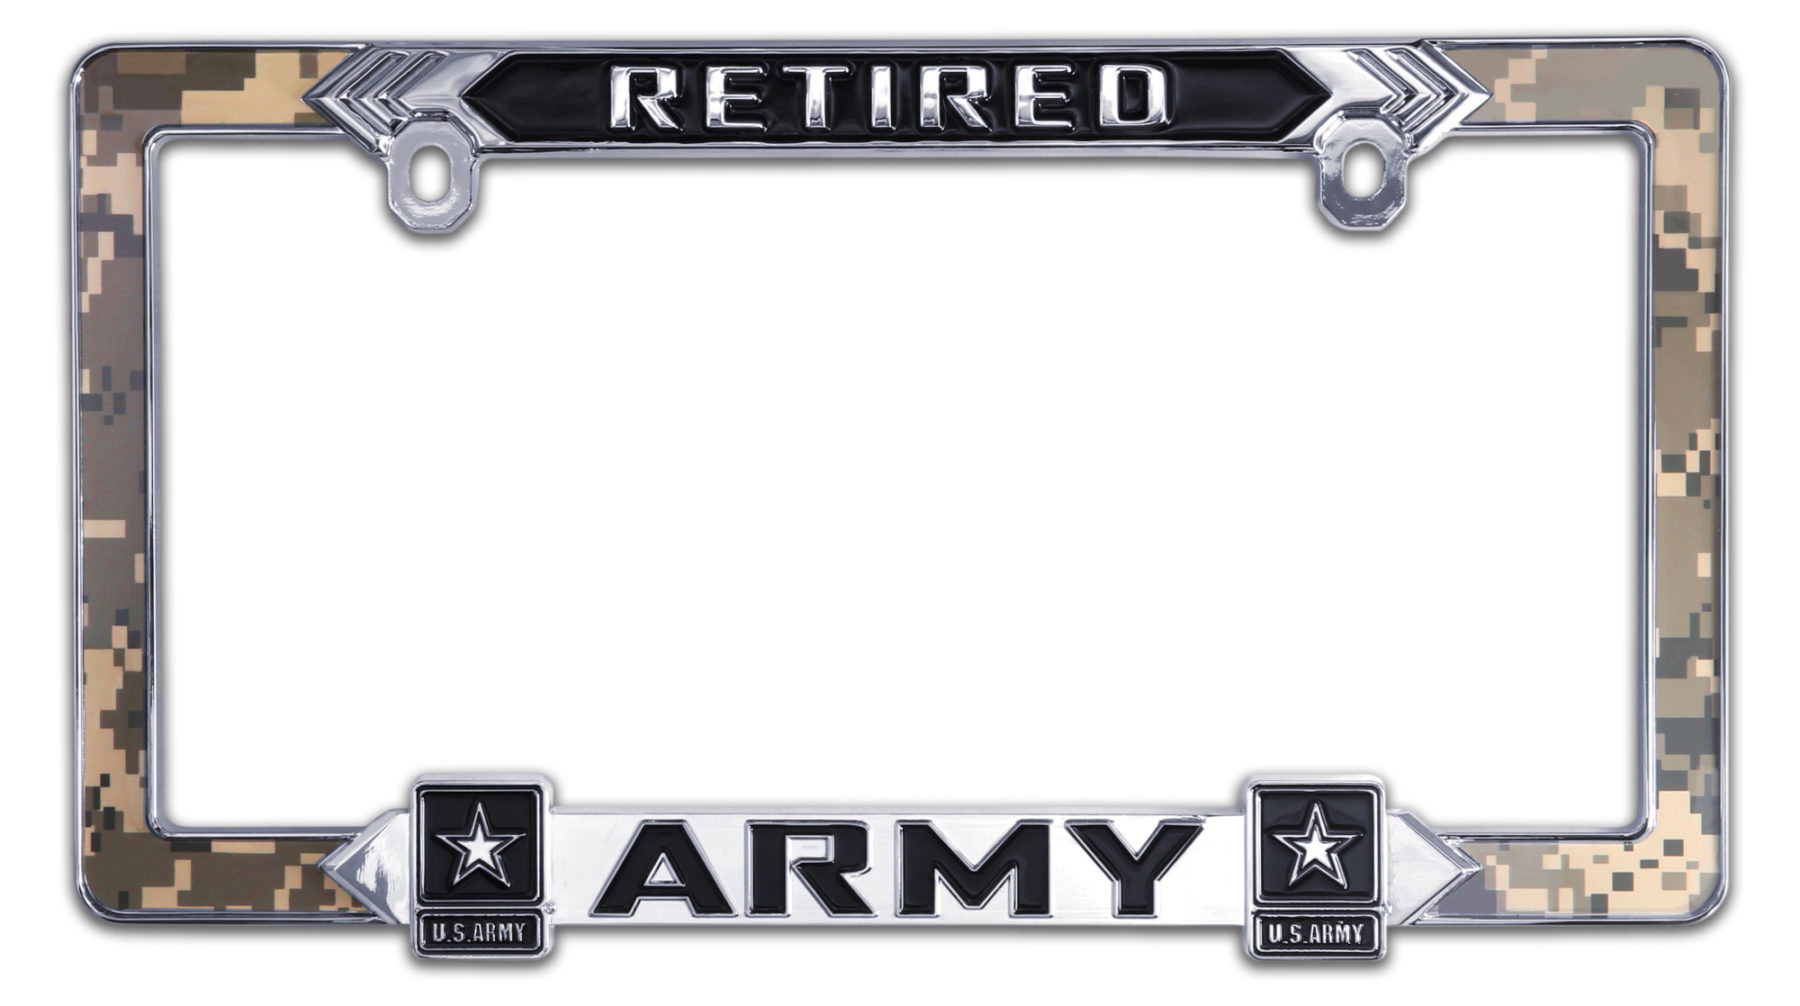 Army Retired 3D License Plate Frame | Elektroplate